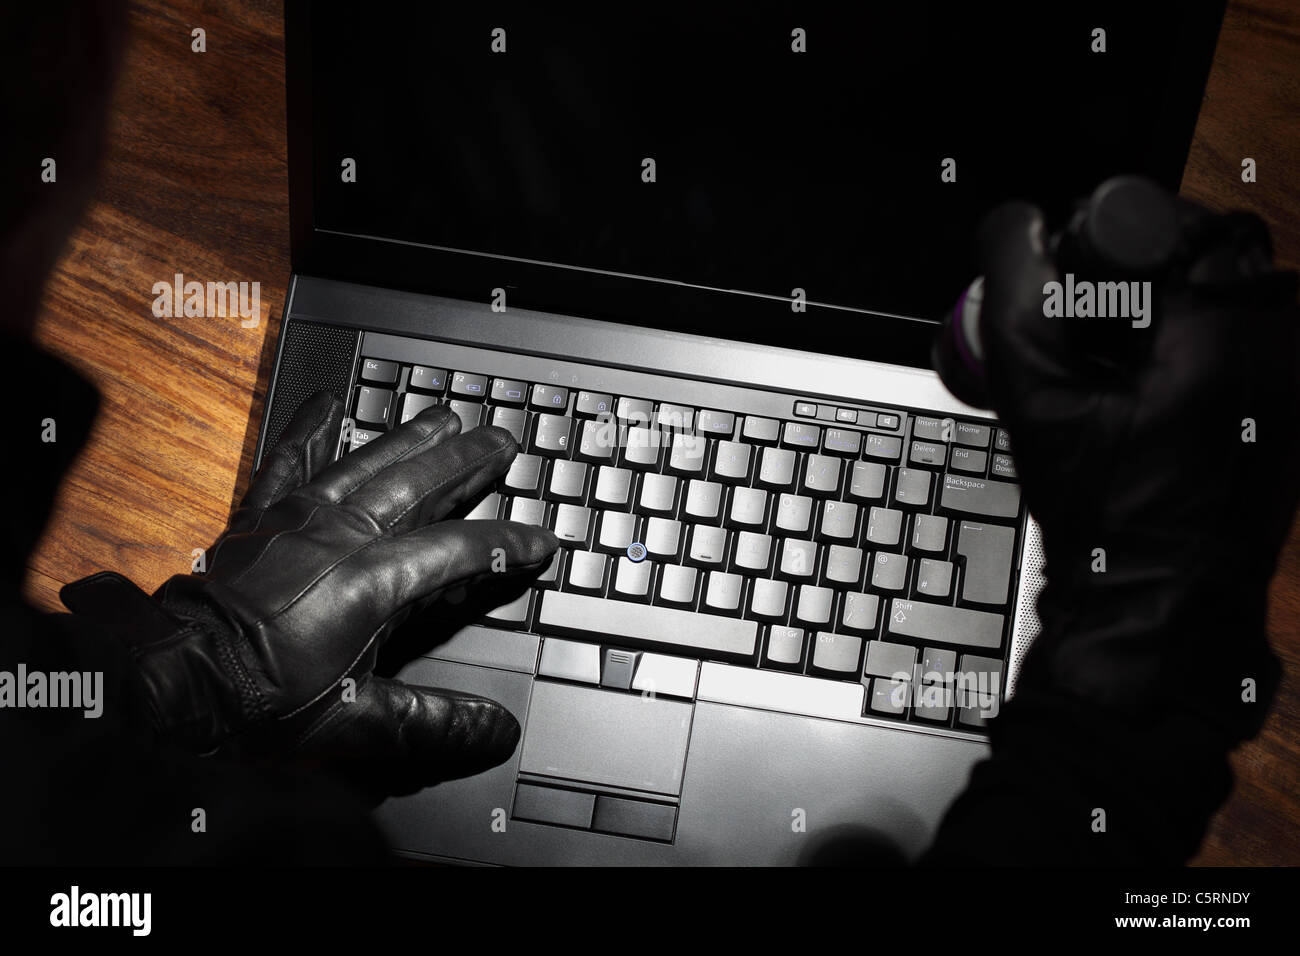 Man stealing data from a laptop - Stock Image